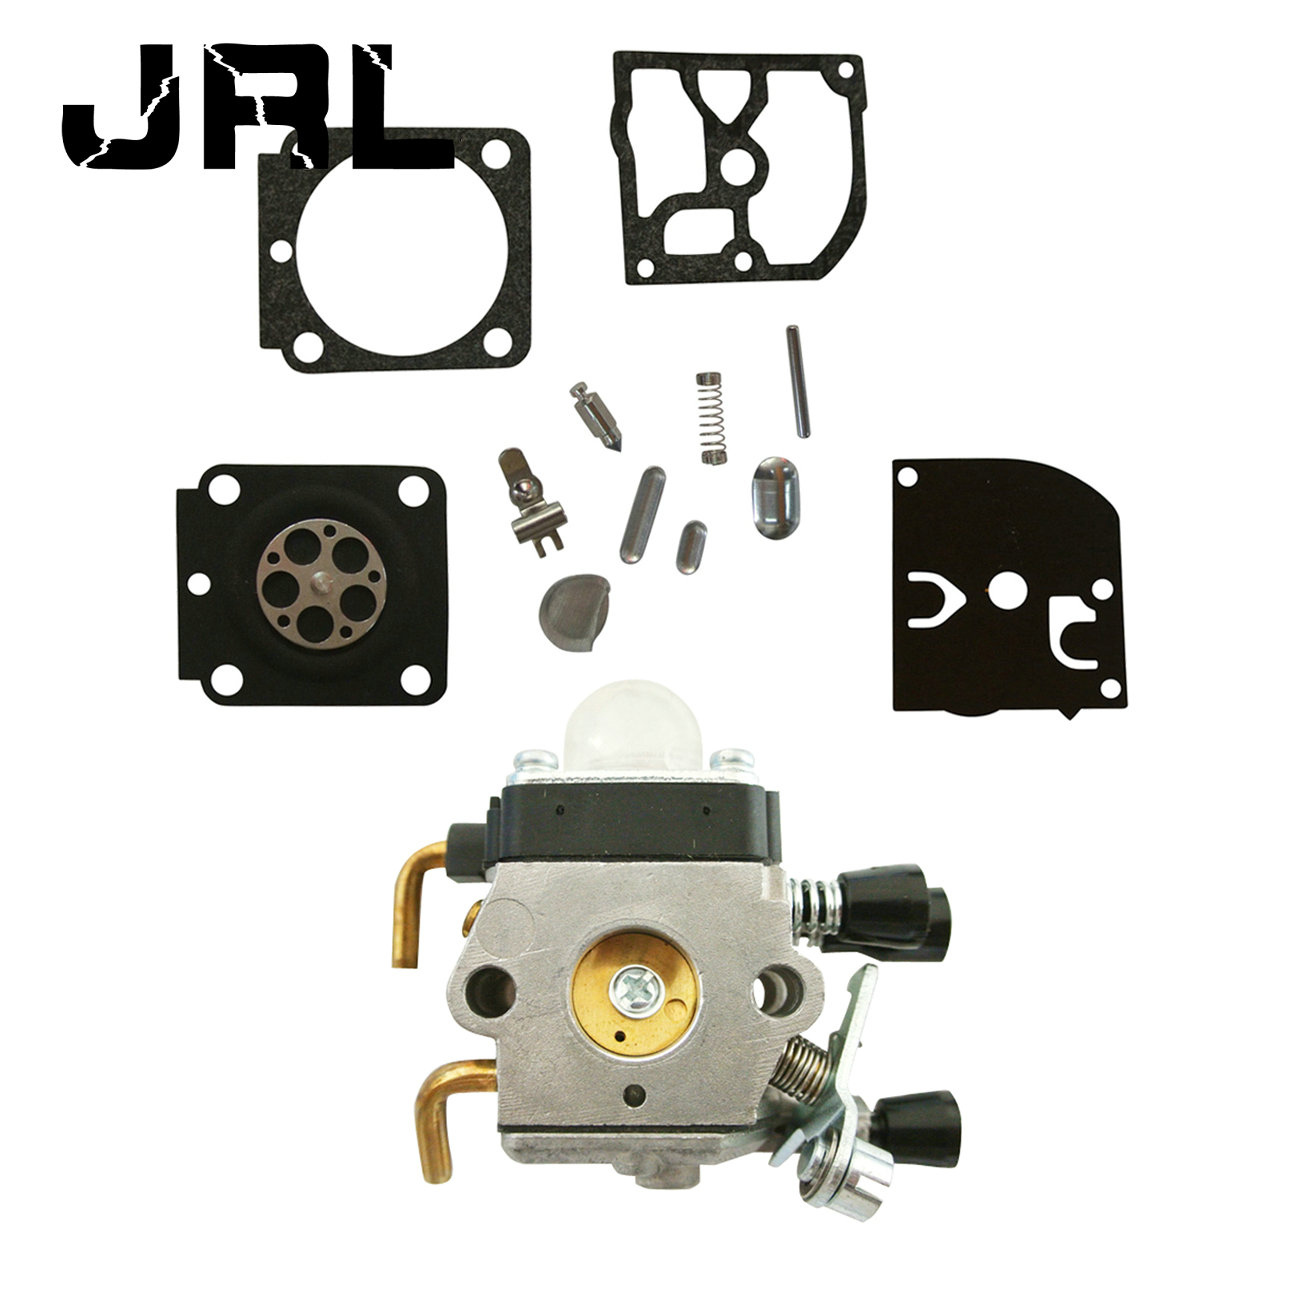 Carb Carburetor & Diaphram Repair Kit For <font><b>Stihl</b></font> <font><b>FS38</b></font> FS45 FS46 ZAMA C1Q S143 image